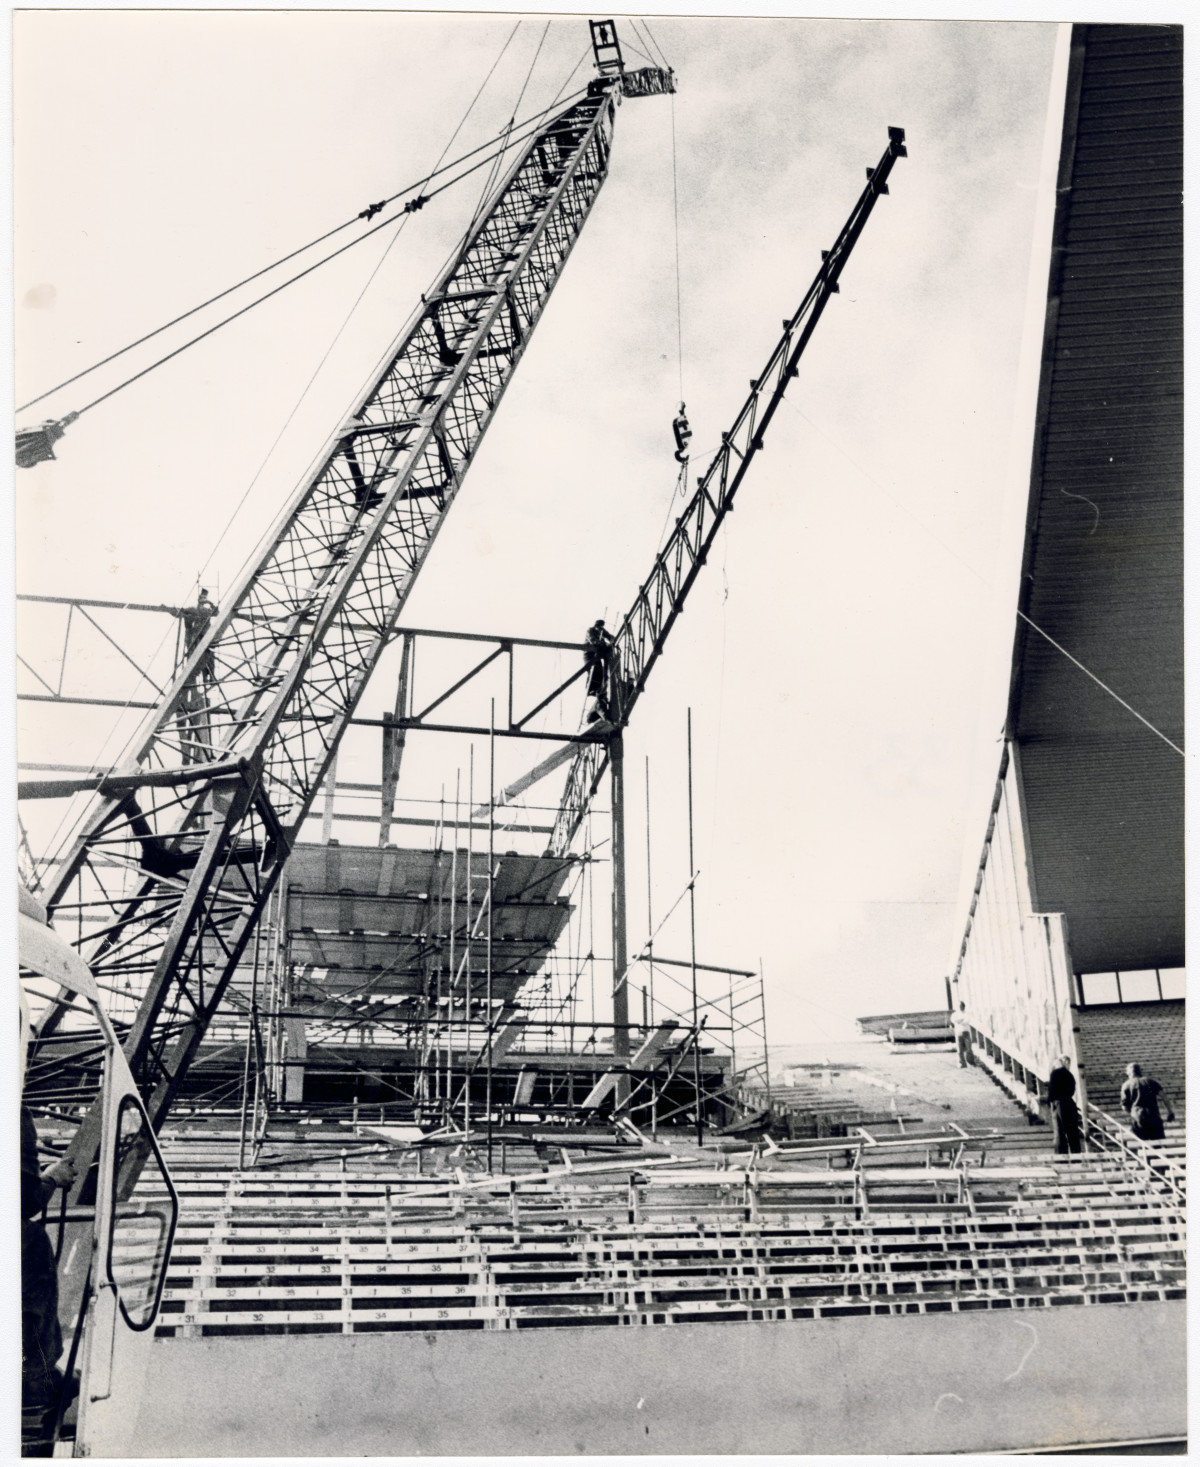 Rebuild of No. 2 stand at Lancaster Park 2 May 1977. Christchurch Star archive. In copyright.CCL-StarP-01961A